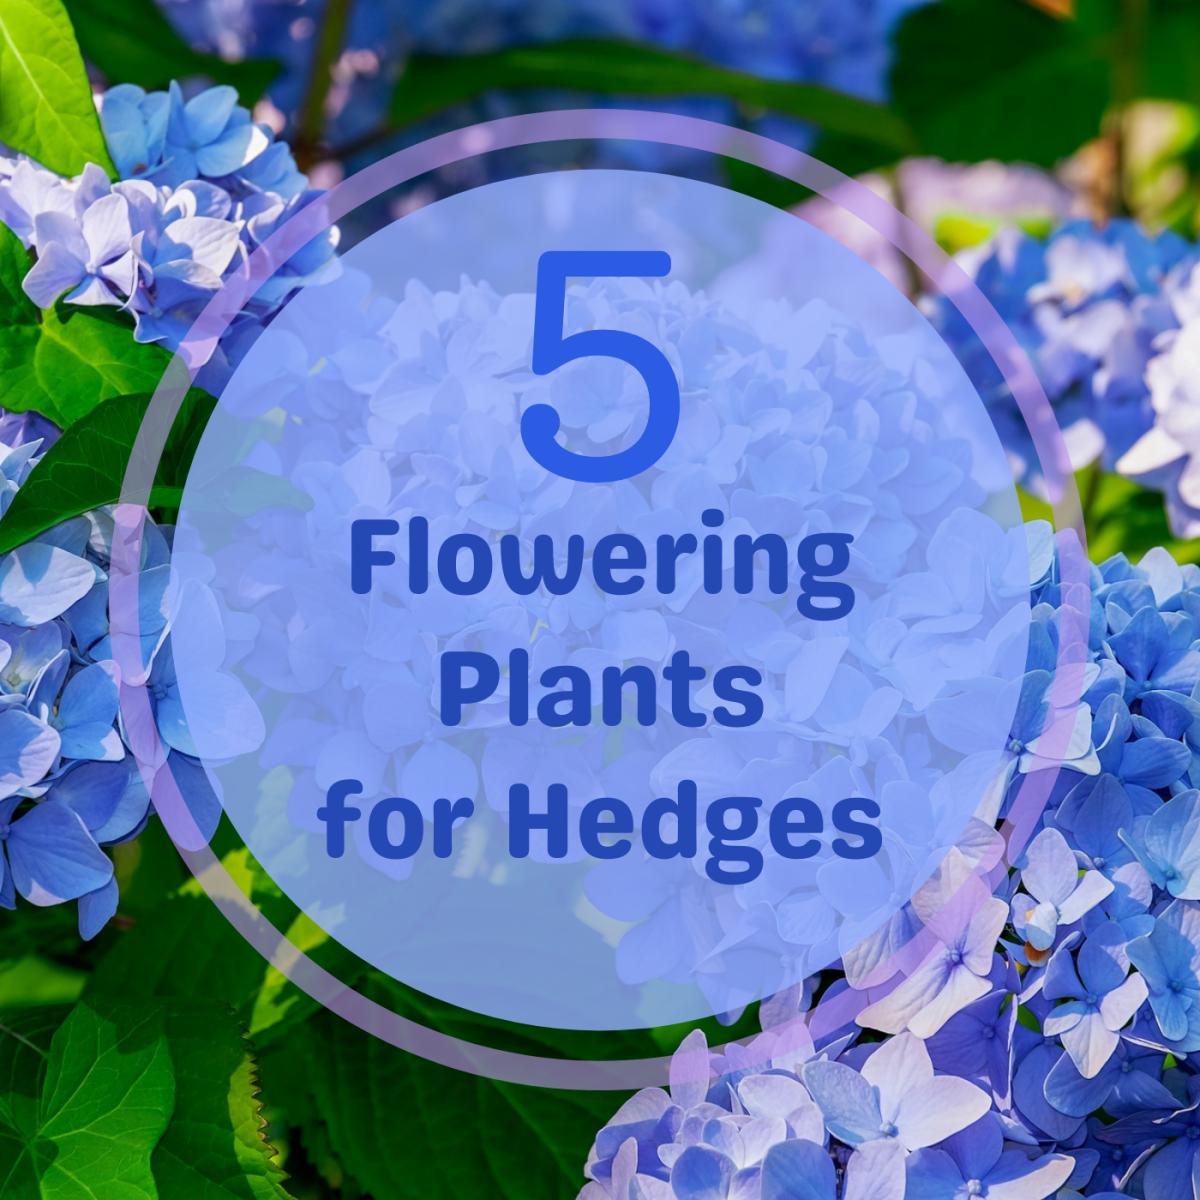 Discover some beautiful, flowering plants that make great ornamental hedges.